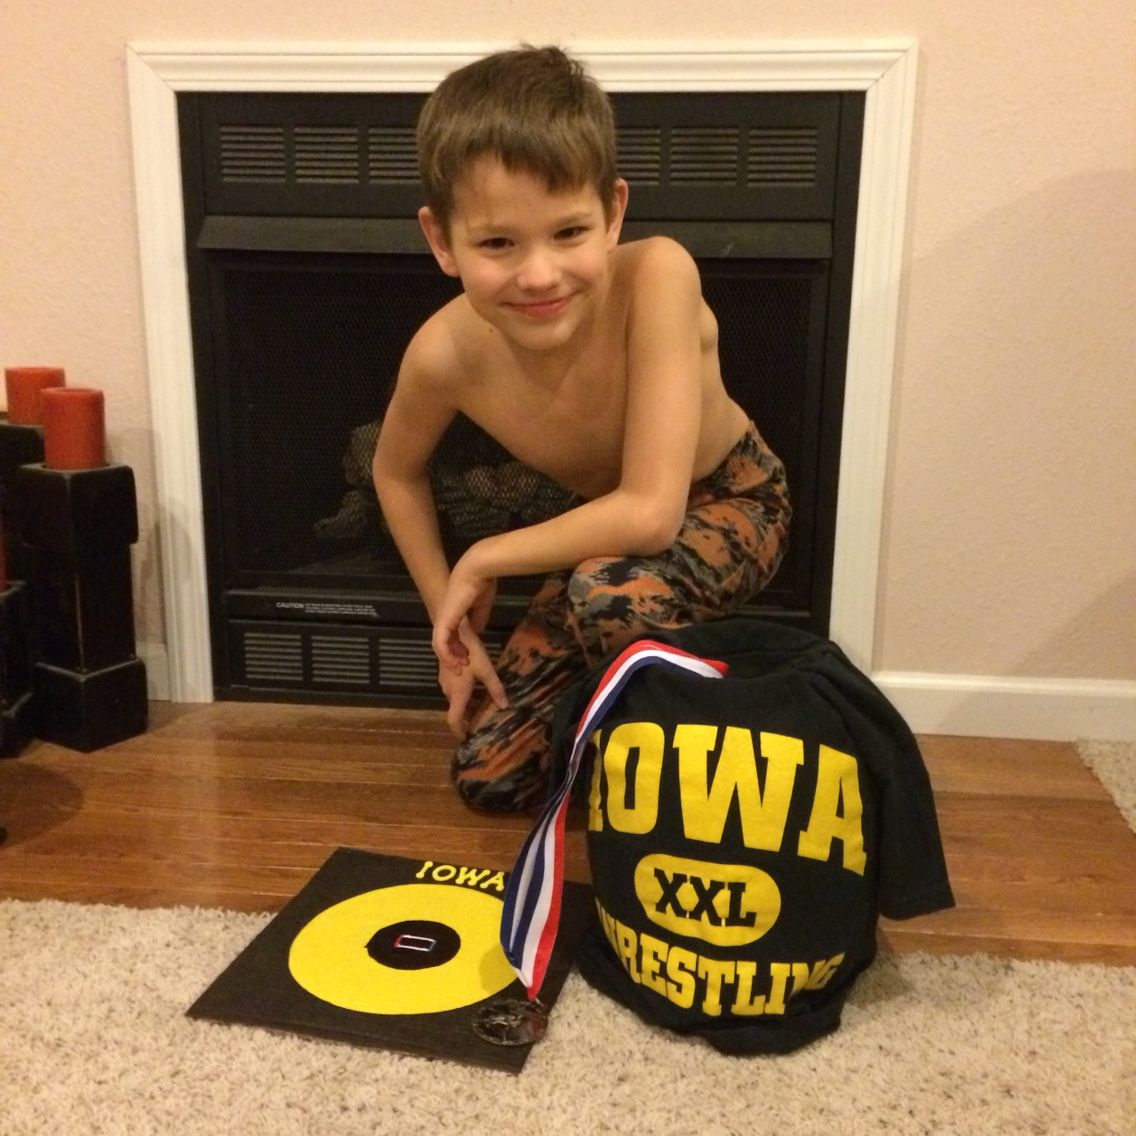 Iowa wrestling valentine box for cards at school Includes mat